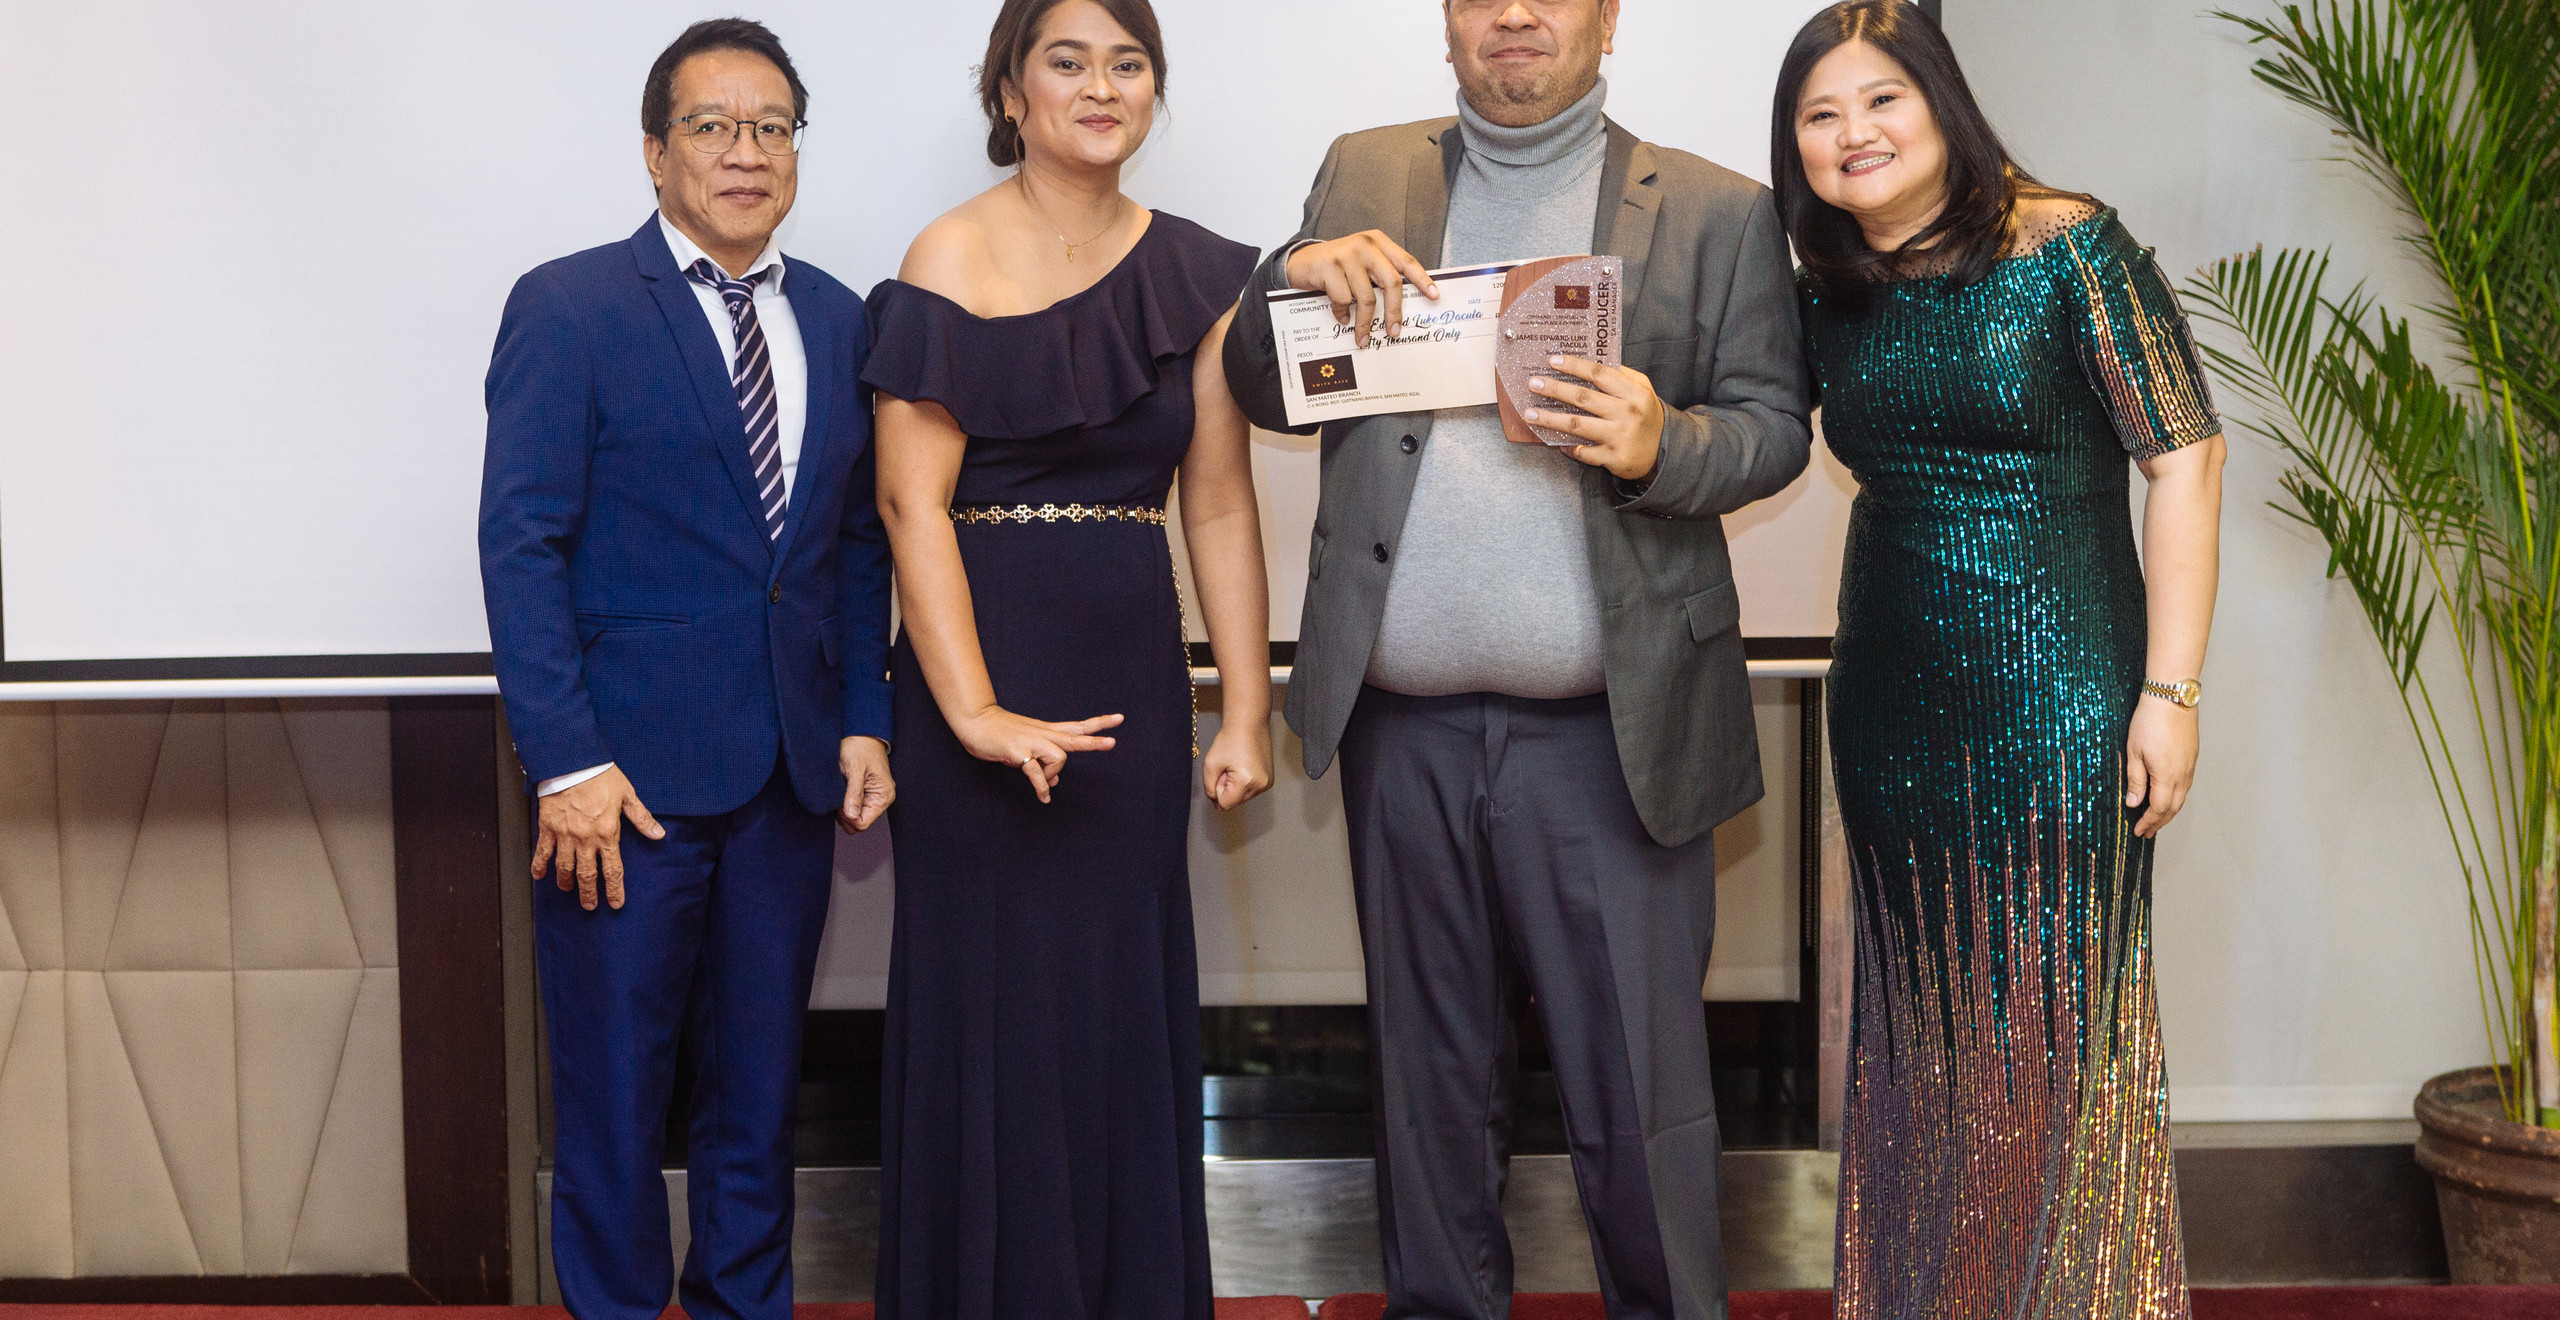 2nd Annual Top Sales Manager Mr. James Edward Luke Dacula (3rd from left) with CCI Officers